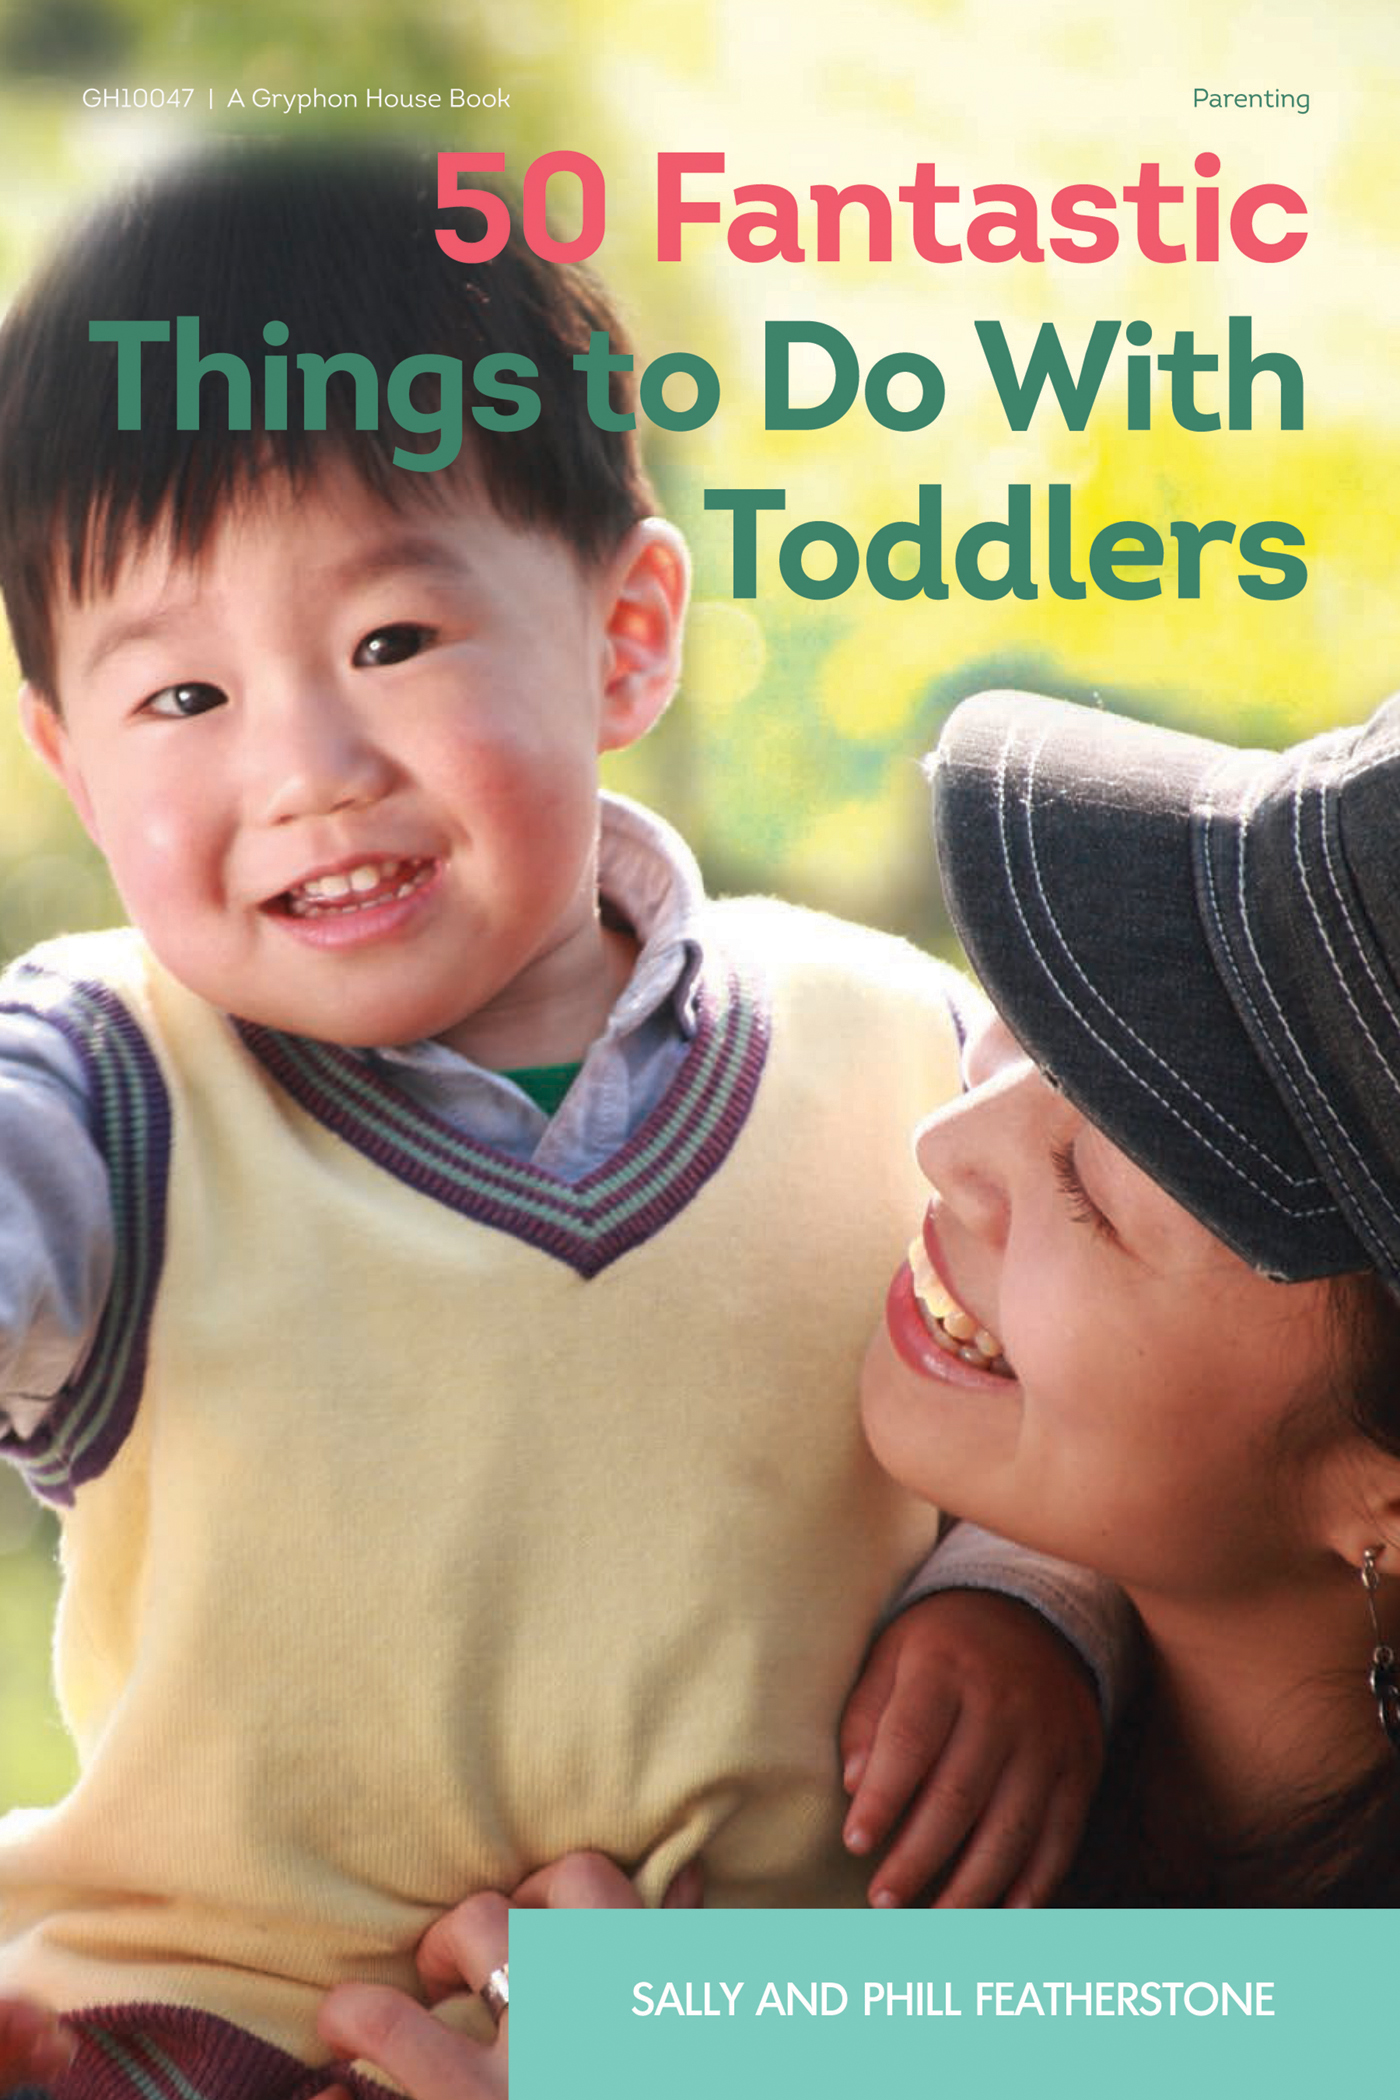 50 Fantastic Things to Do With Toddlers | Gryphon House